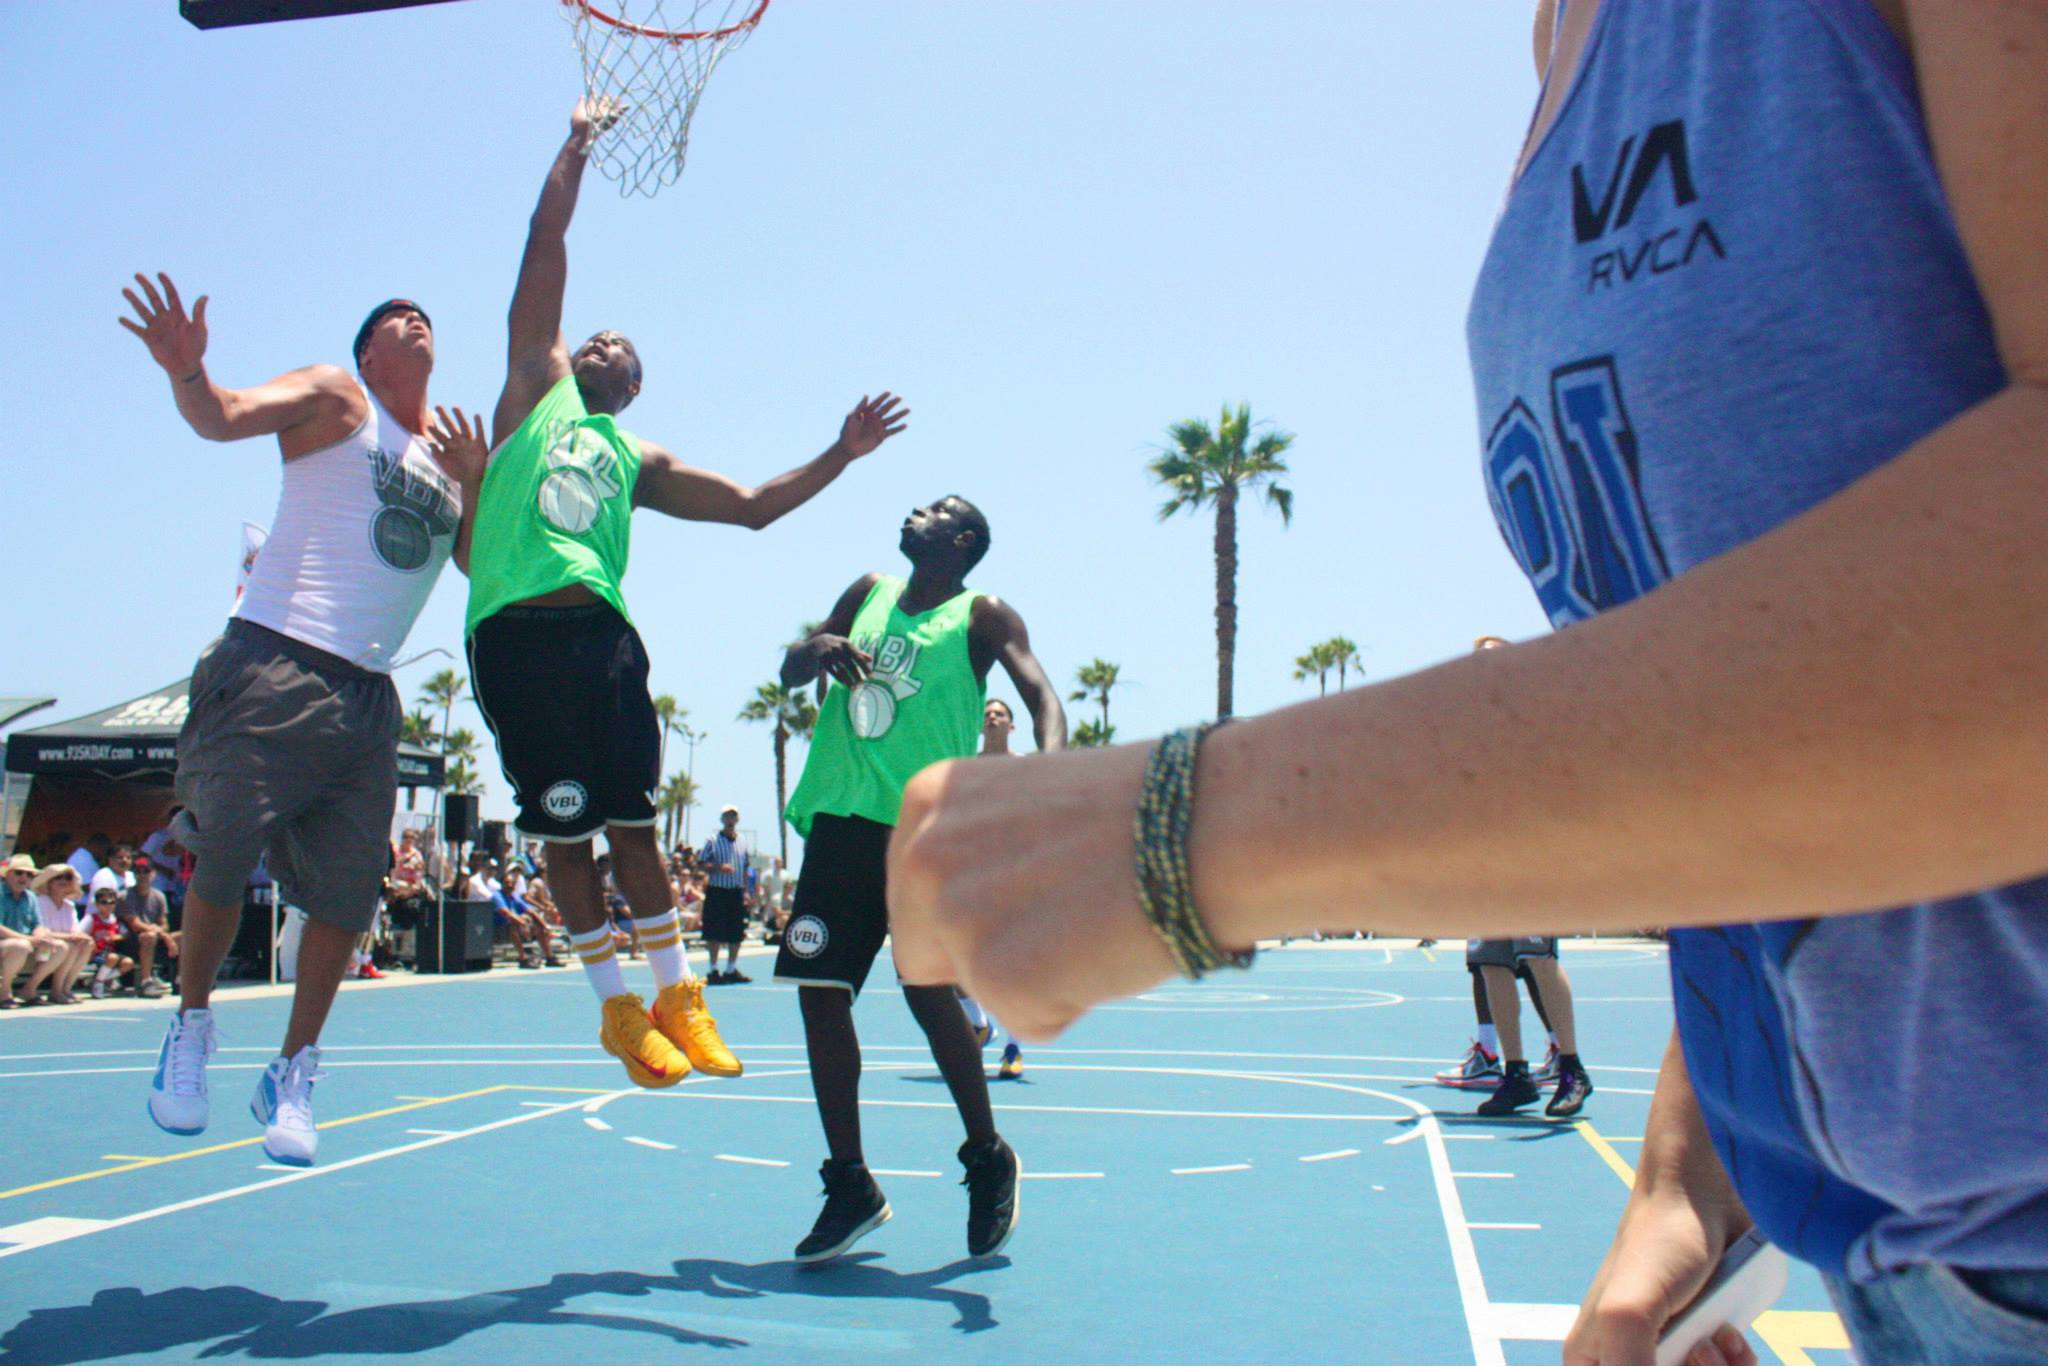 Best Shots from Week 5 at #TheVBL > Nothing like it!